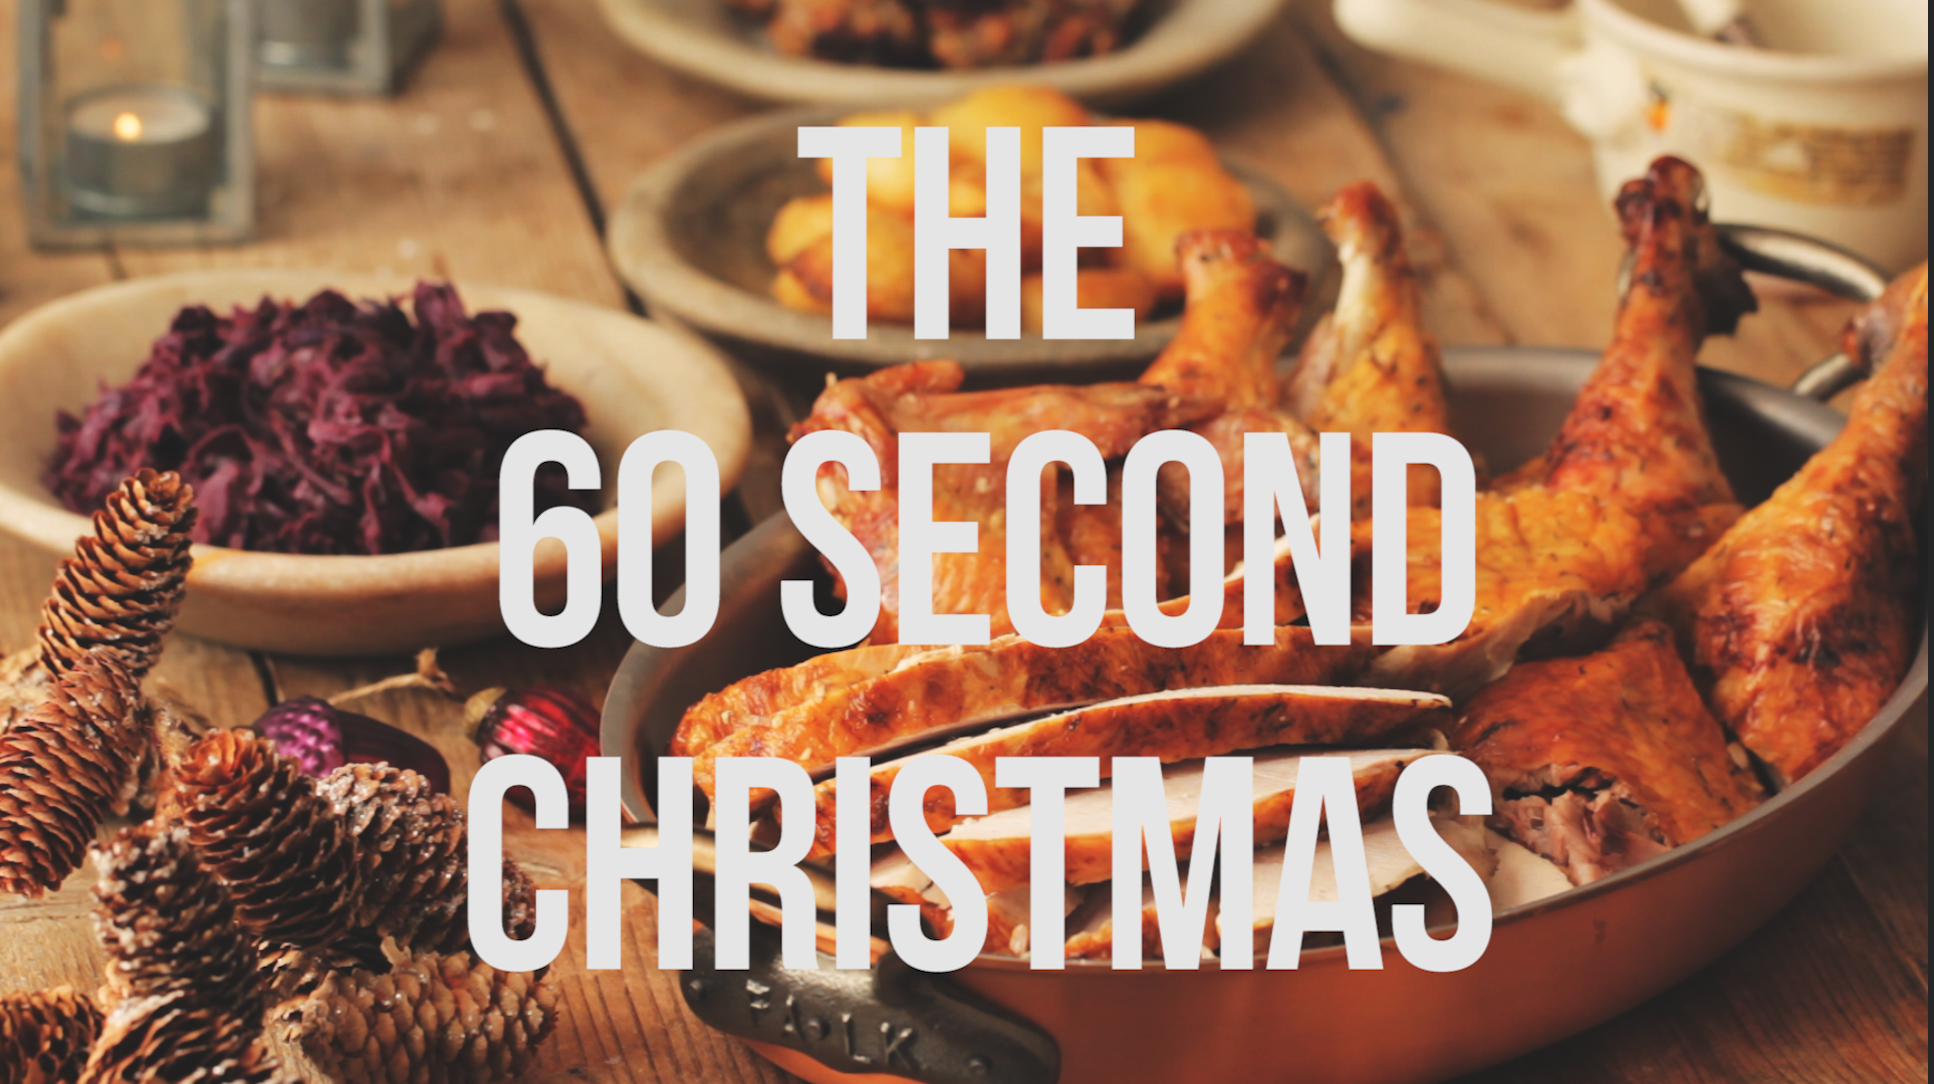 The 60 Second Christmas